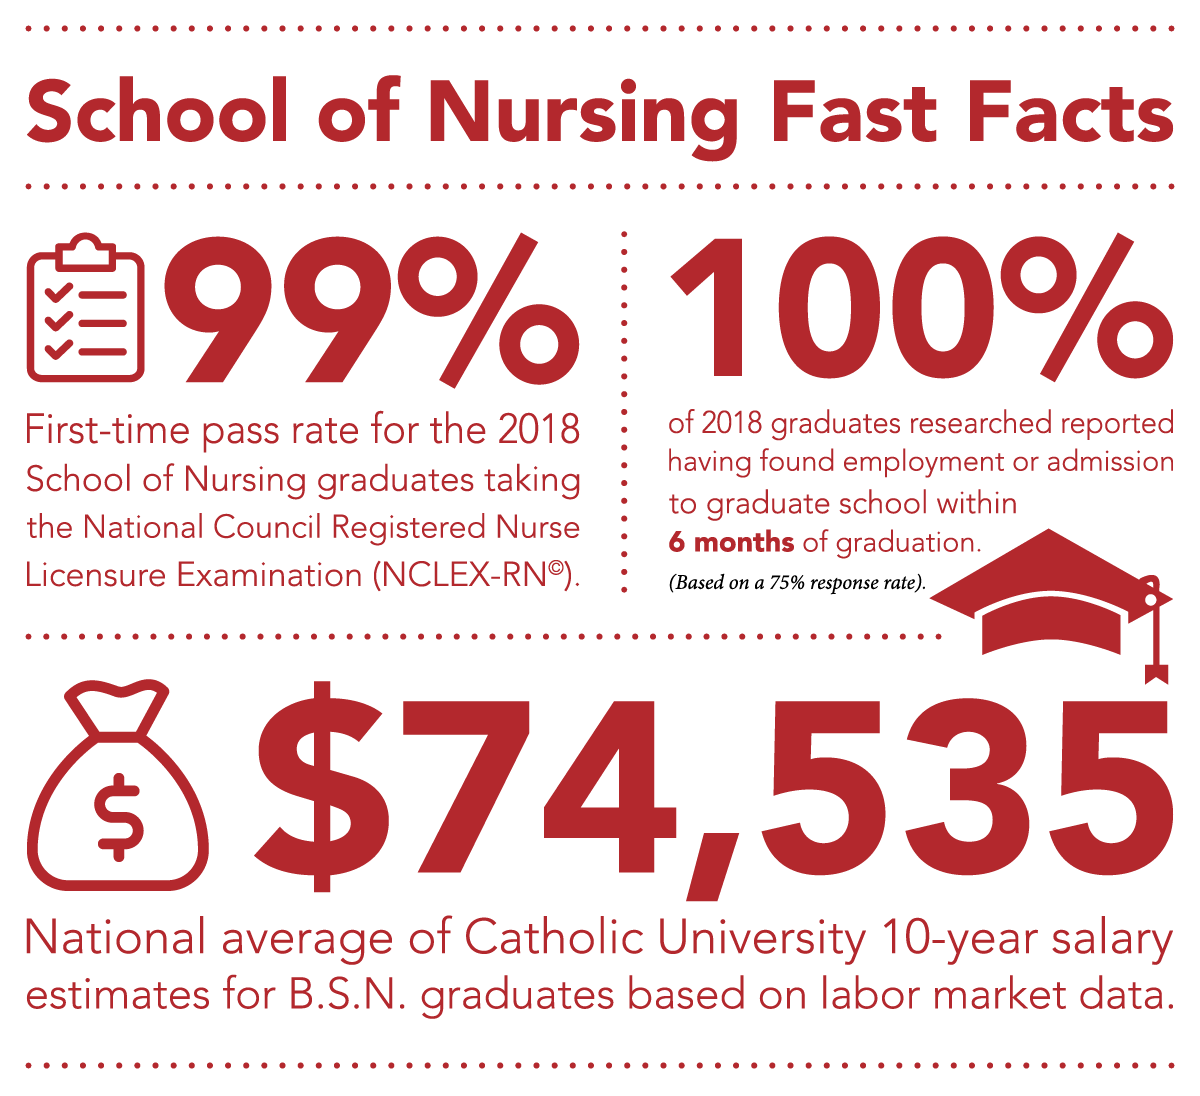 School of Nursing Fast Facts 99% First-time pass rate for the 2018 School of Nursing graduates taking the National Council Registered Nurse Licensure Examination (NCLEX-RN). 100% of 2018 graduates researched reported having found employment or admission to graduate school within 6 months of graduation (Based on a 75% response rate). $74,535 is the National Average of Catholic University 10-year salary estimates for B.S.N. graduates based on labor market data.